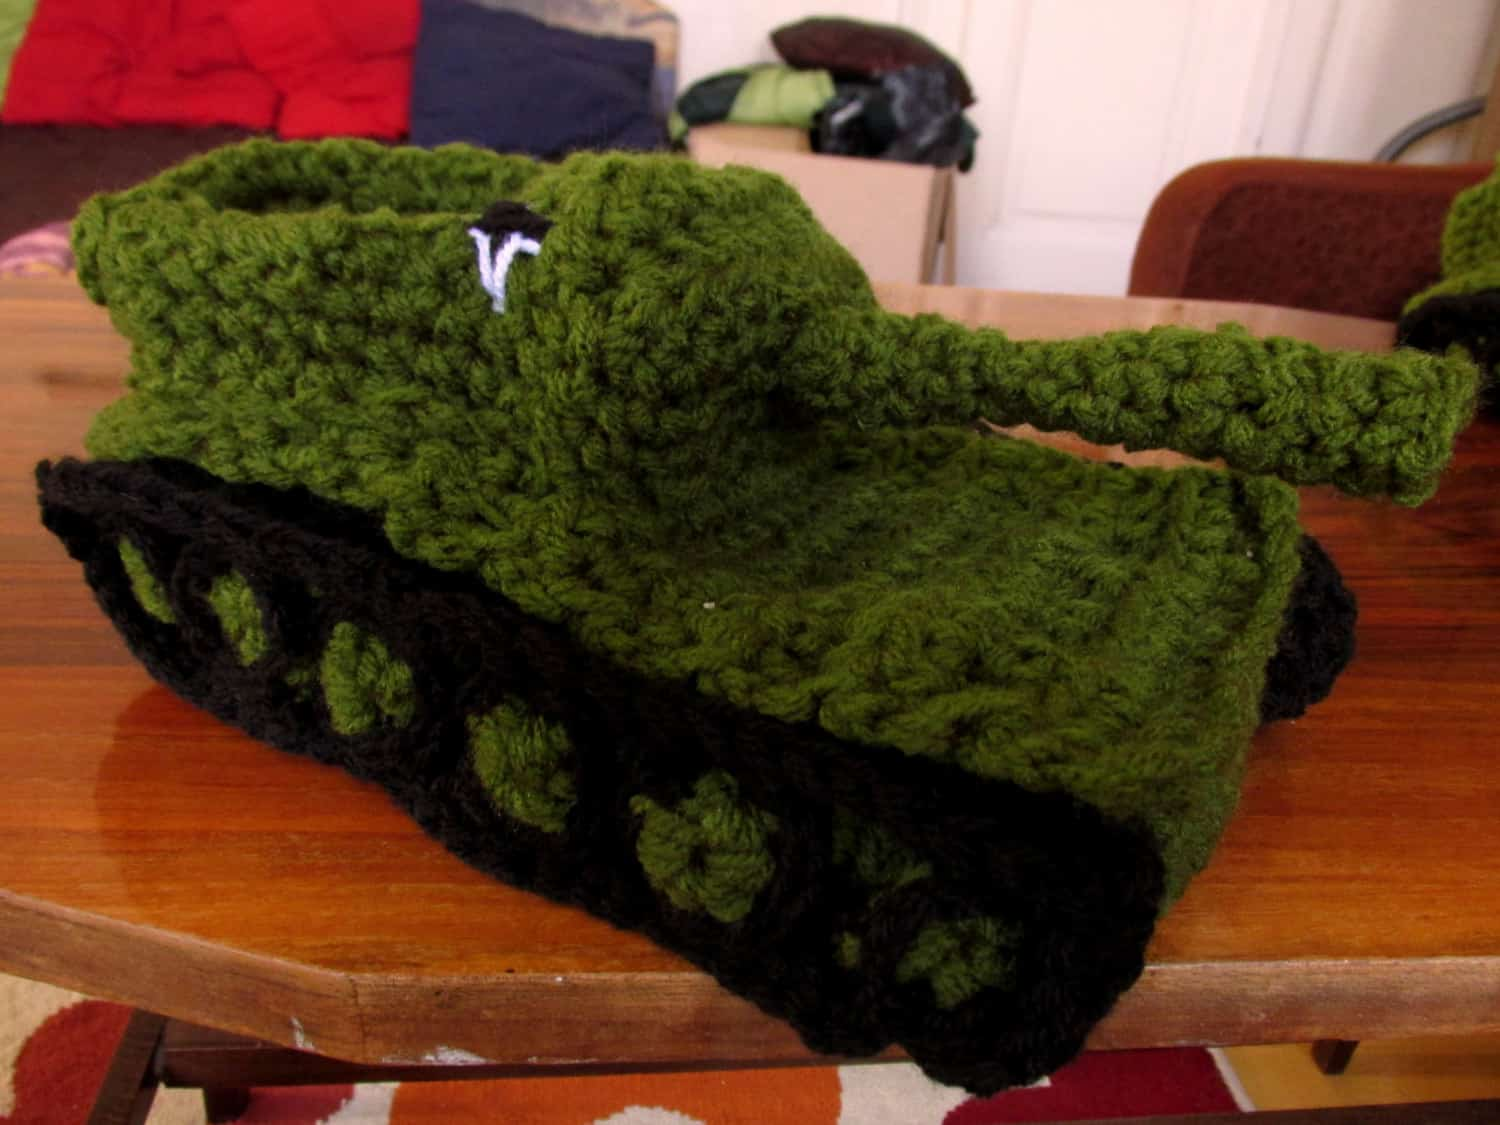 Panzer Tank Crochet Slippers Green Unique Gift Idea for Him